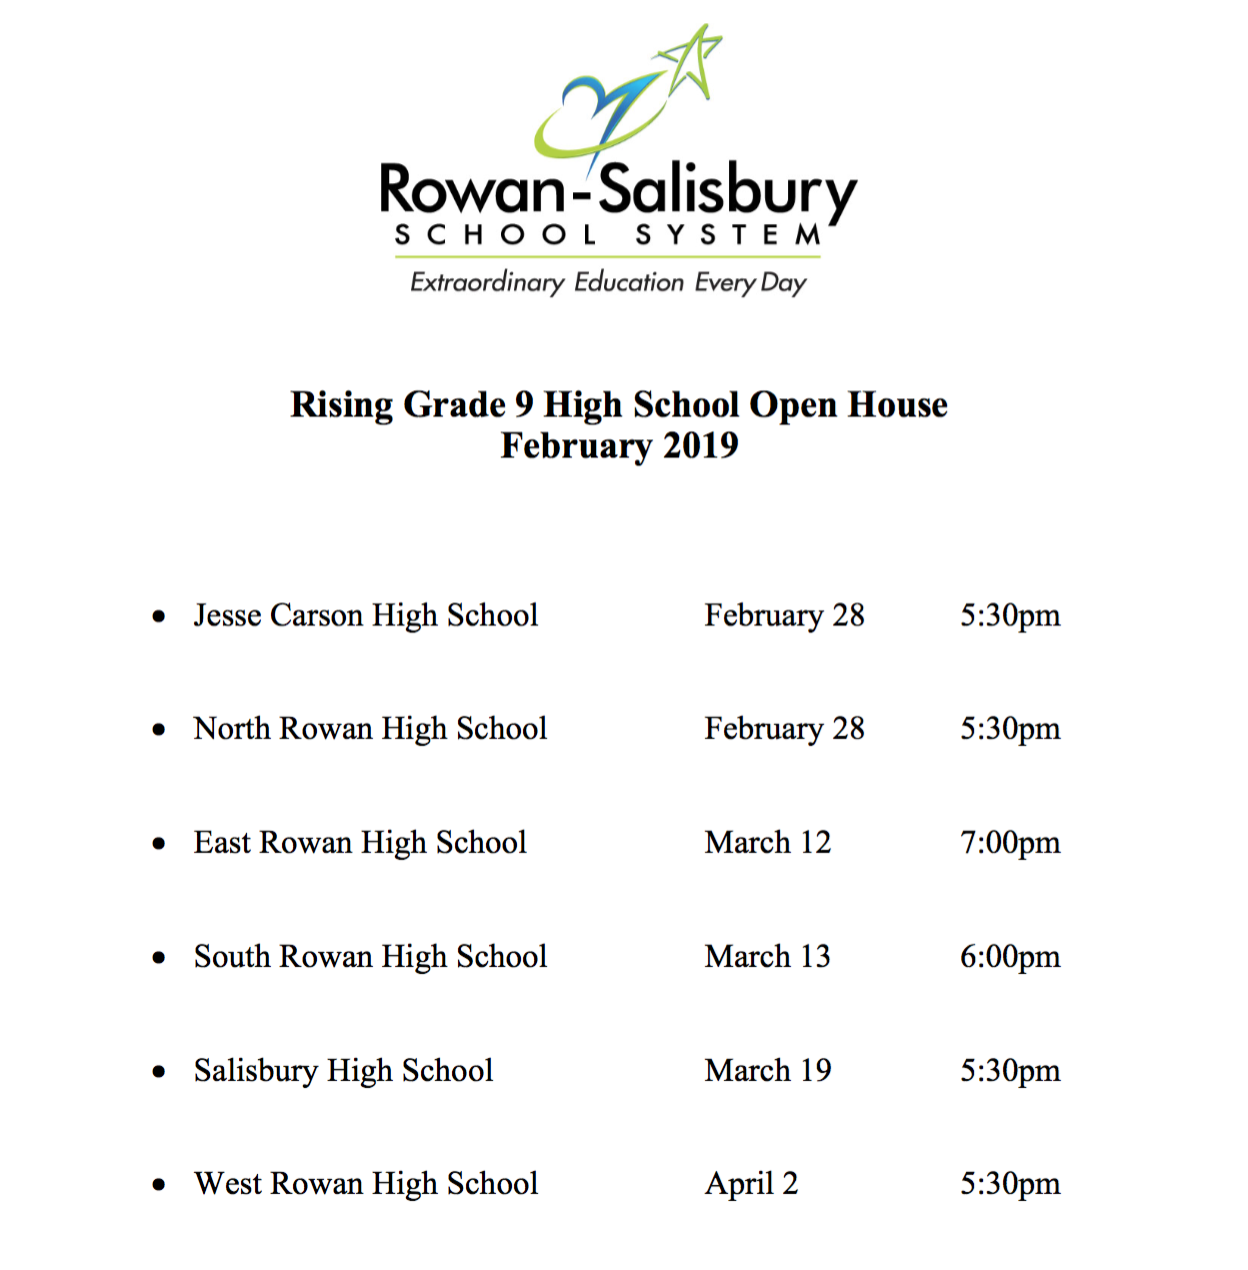 Rising 9th Grade Open House Schedule